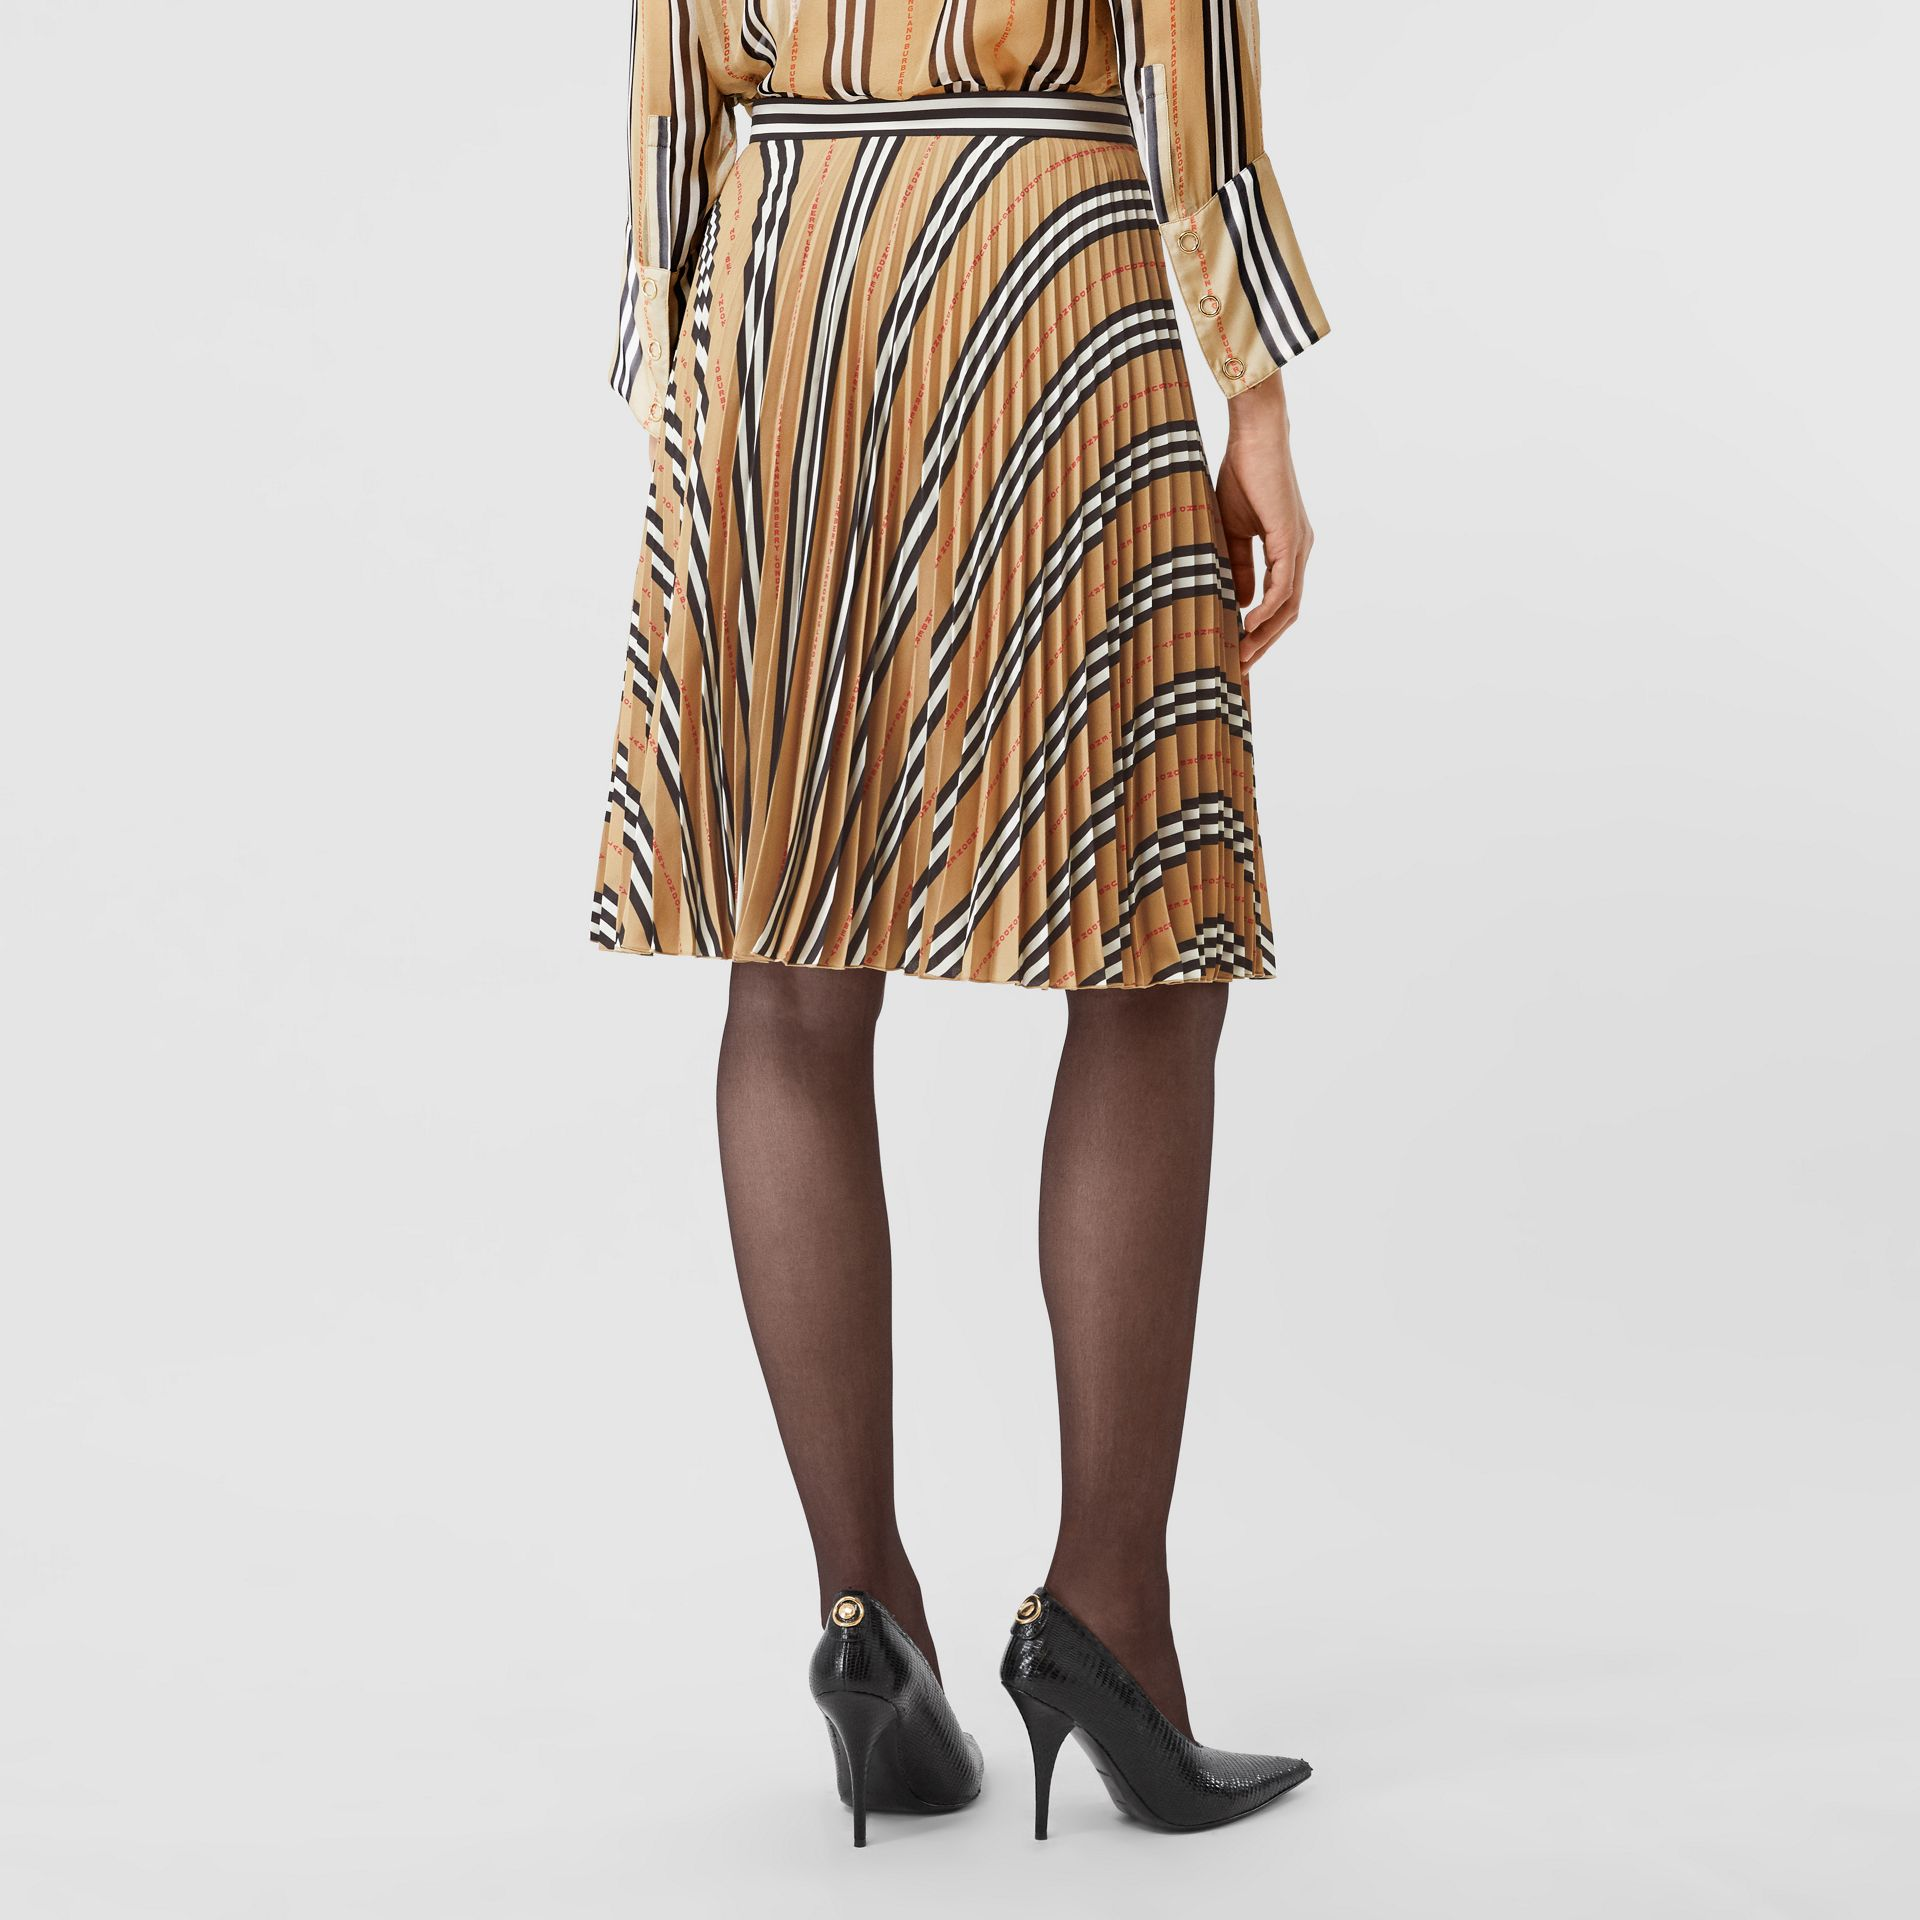 Logo and Stripe Print Crepe Pleated Skirt in Archive Beige - Women | Burberry Canada - gallery image 2